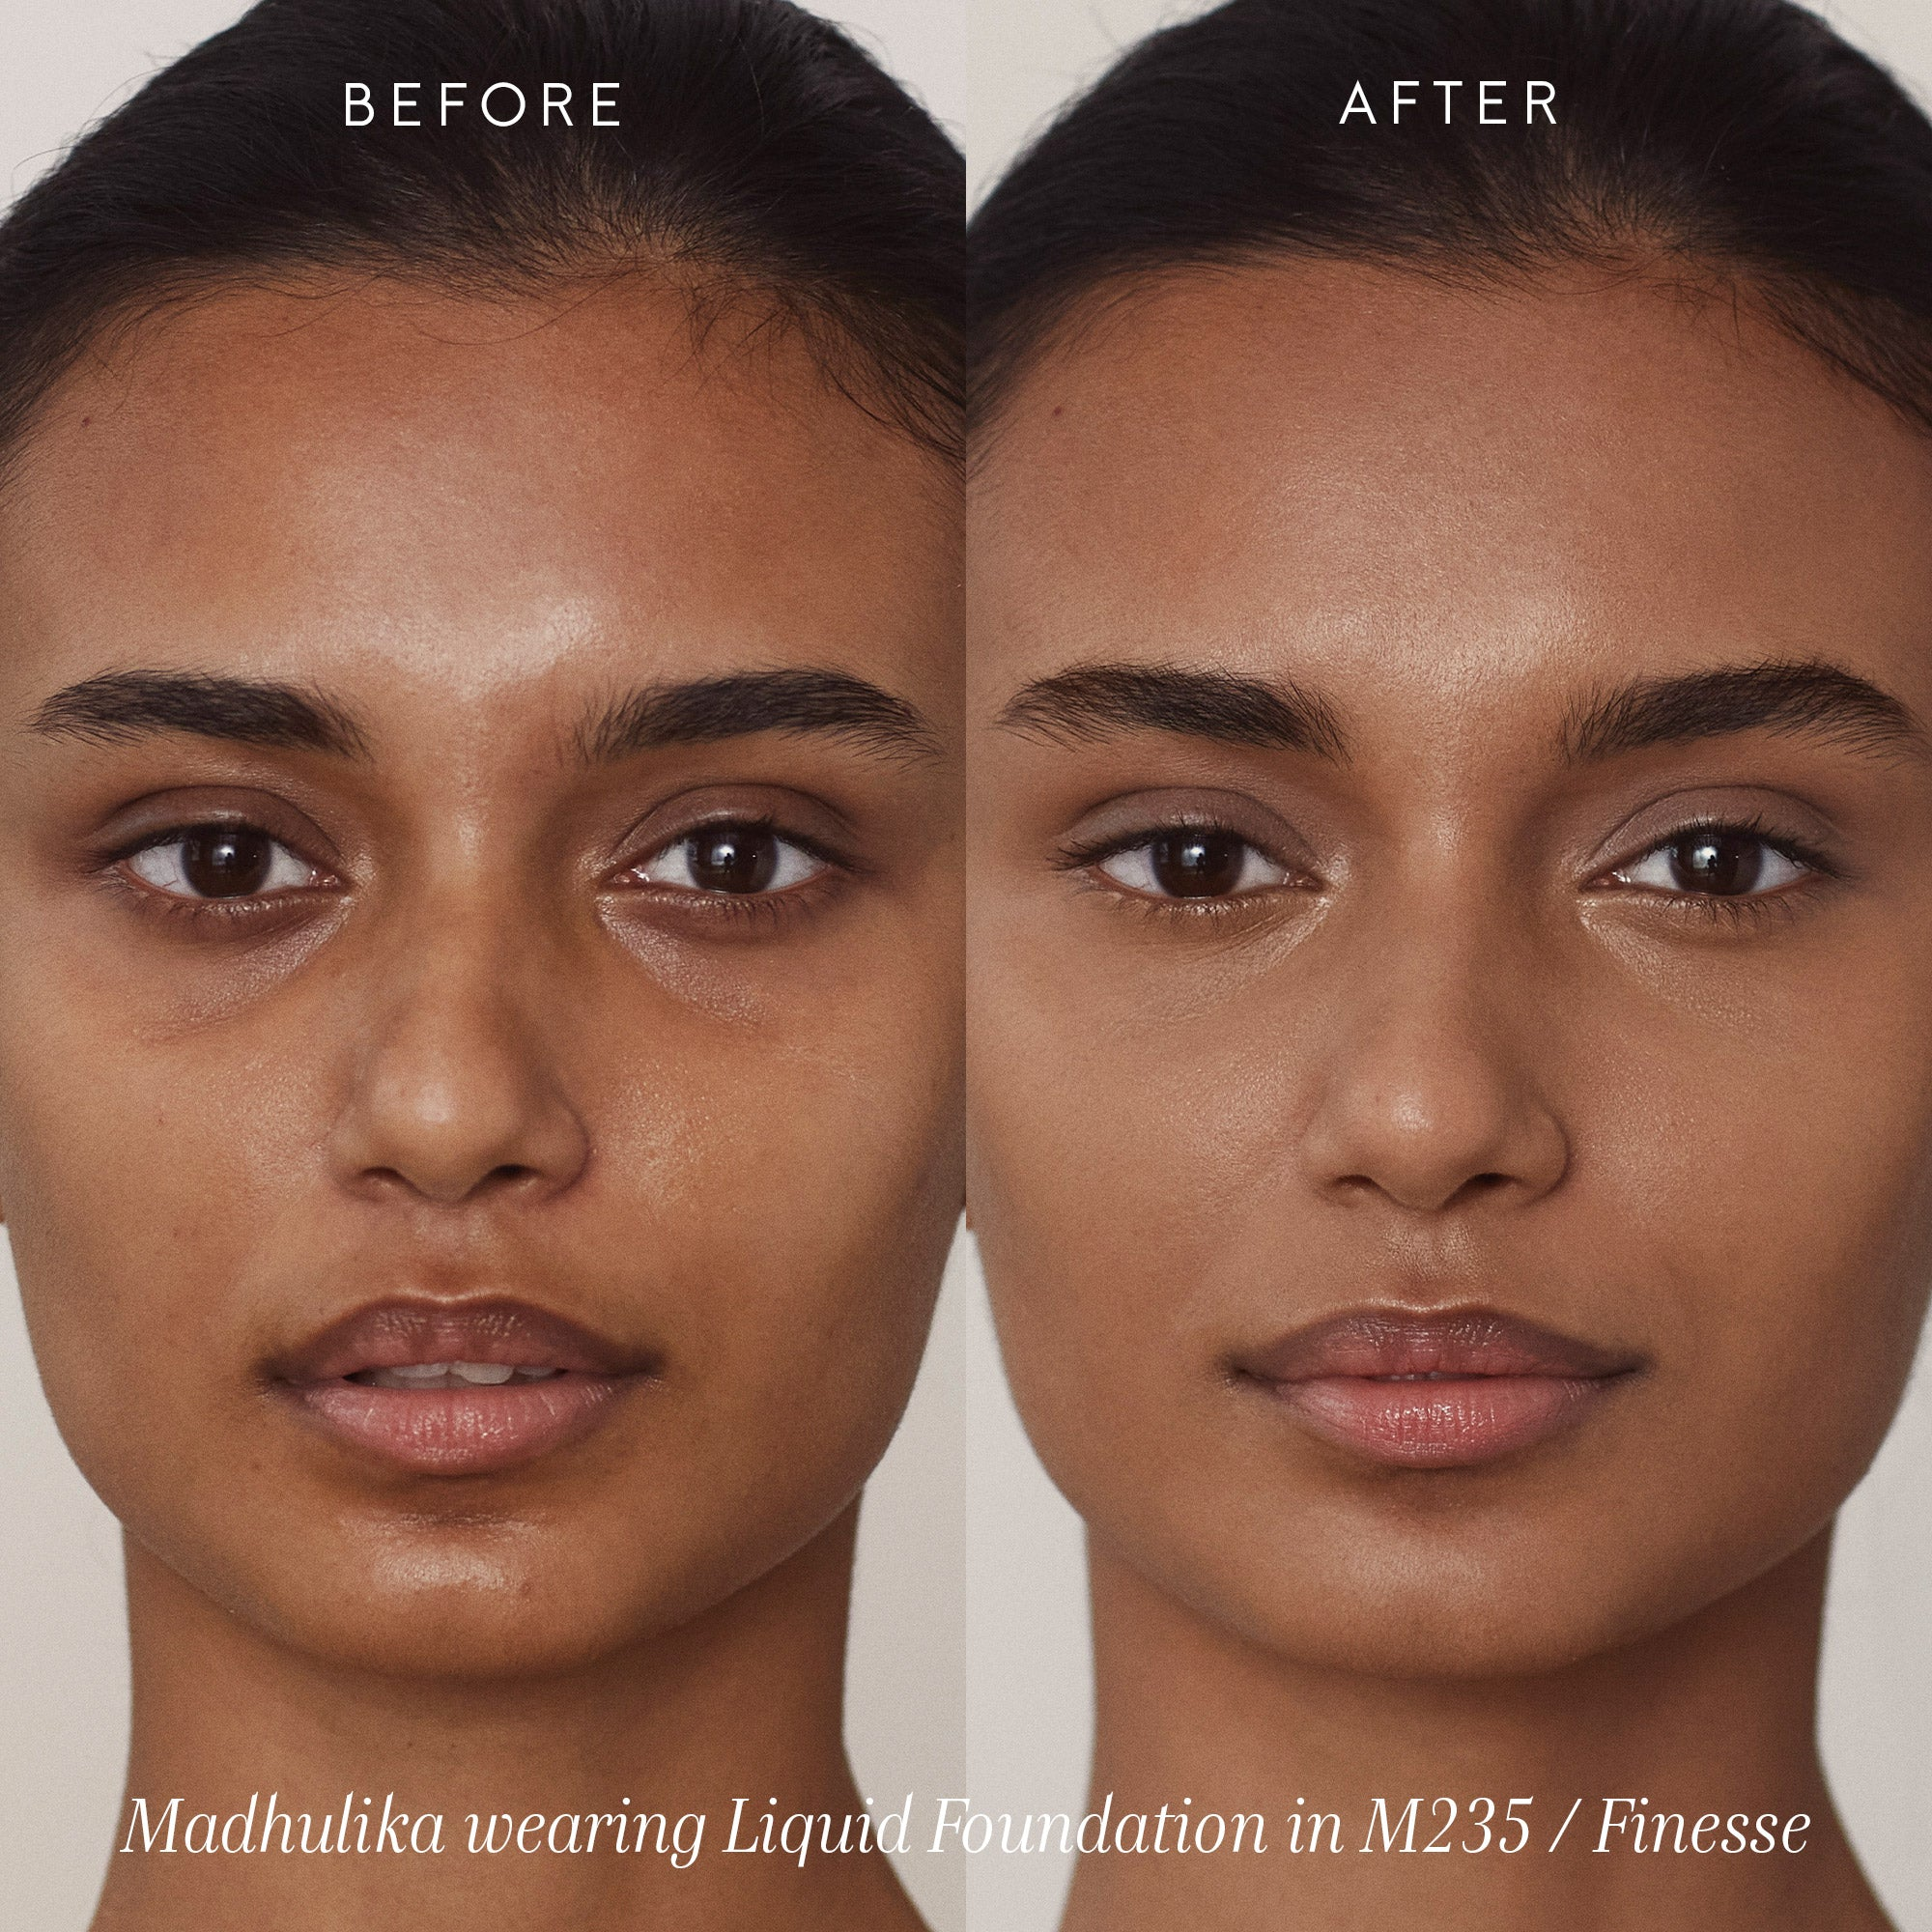 Kjaer-Weis-Invisible-Touch-Liquid-Foundation-Before-and-After-M235-Finesse